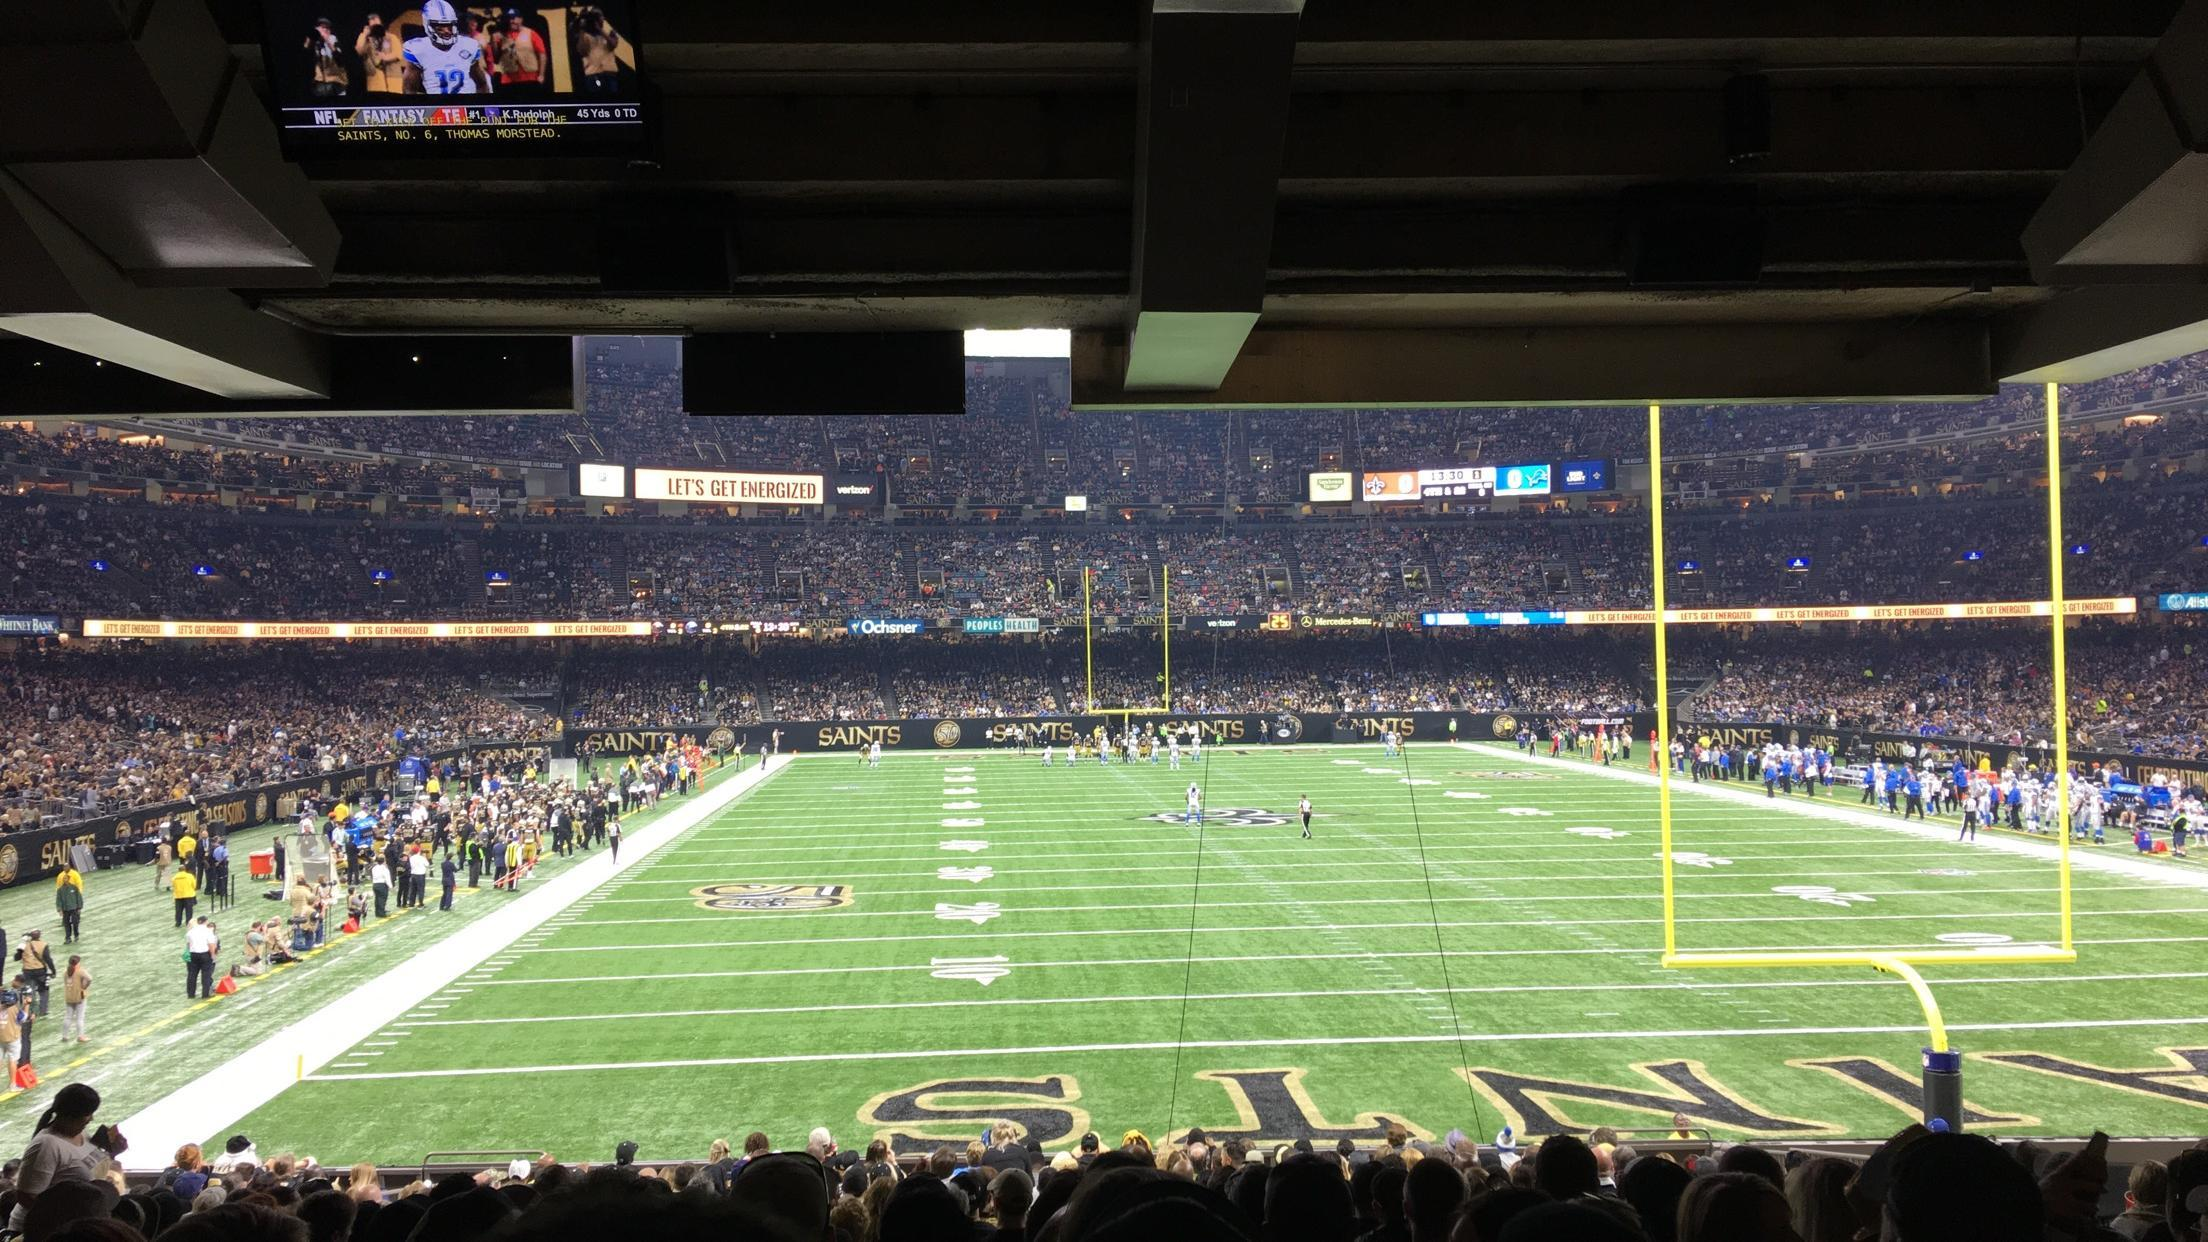 Mercedes-Benz Superdome Section 113 Row 25 Seat 12